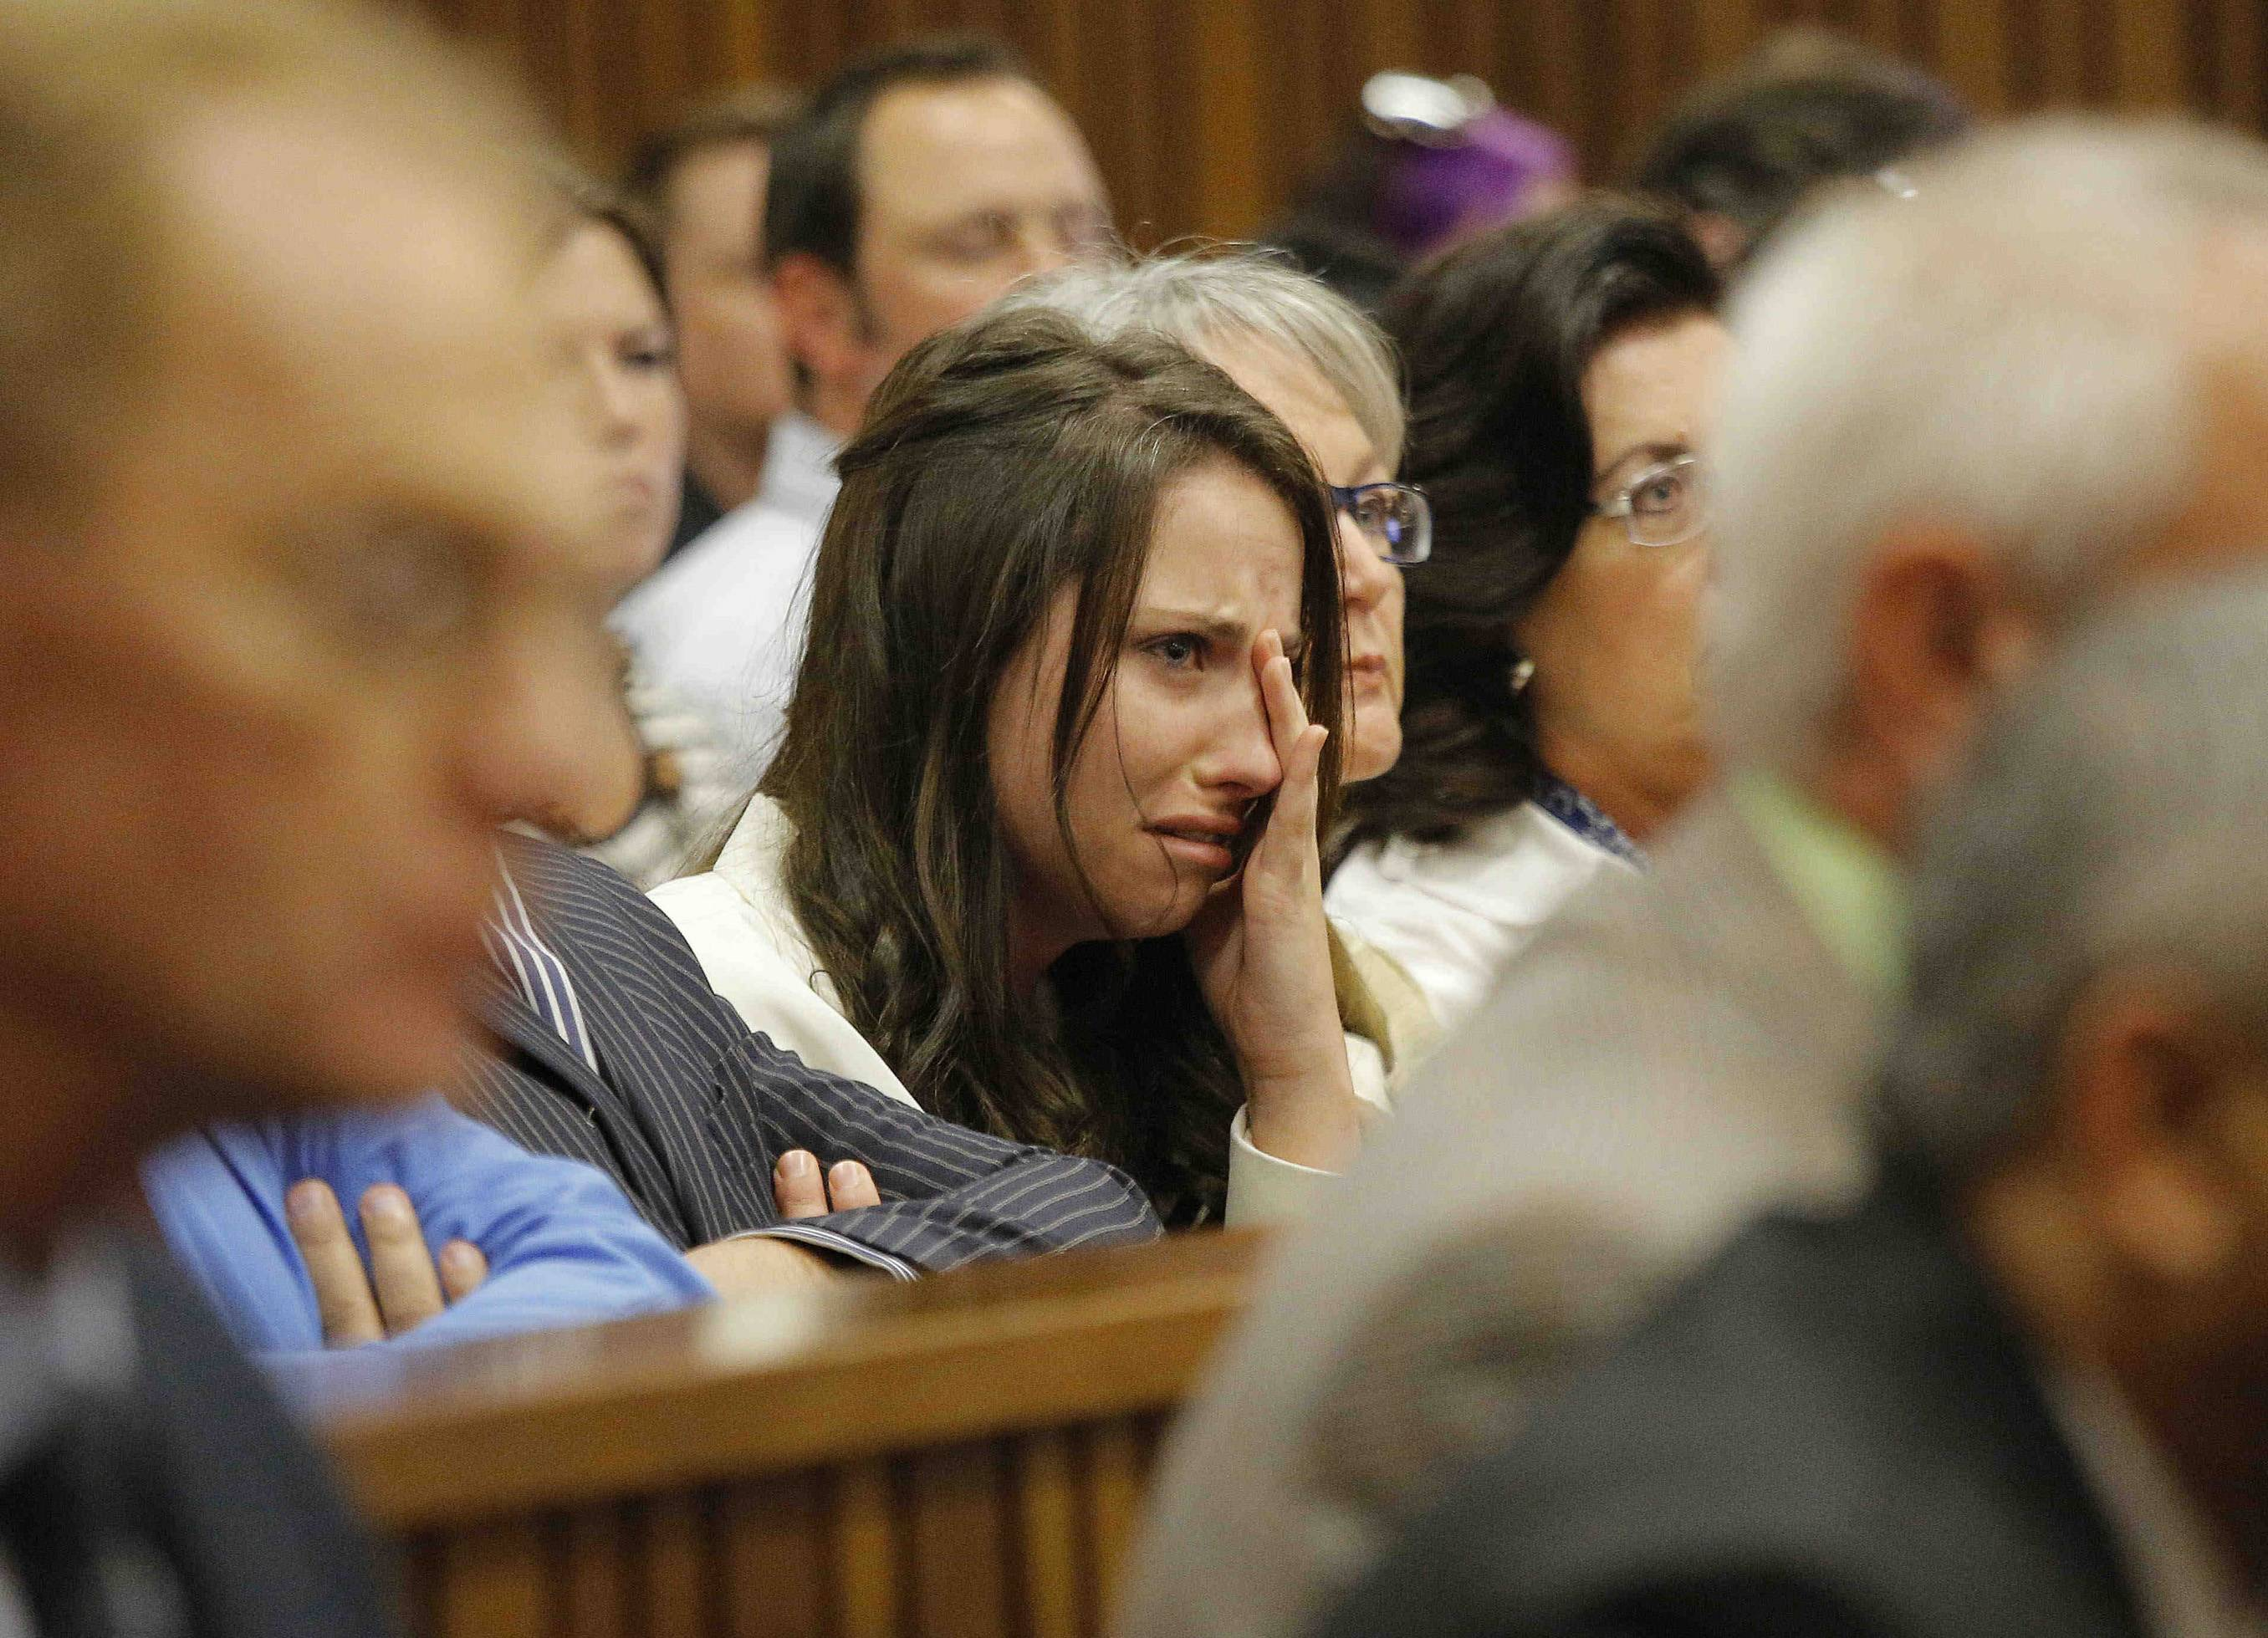 Sister of Oscar Pistorius, Aimee Pistorius, center, cries as she listens as her brother testifies in court in Pretoria, South Africa, Tuesday. Pistorius is charged with the murder of his girlfriend Reeva Steenkamp, on Valentines Day 2013.